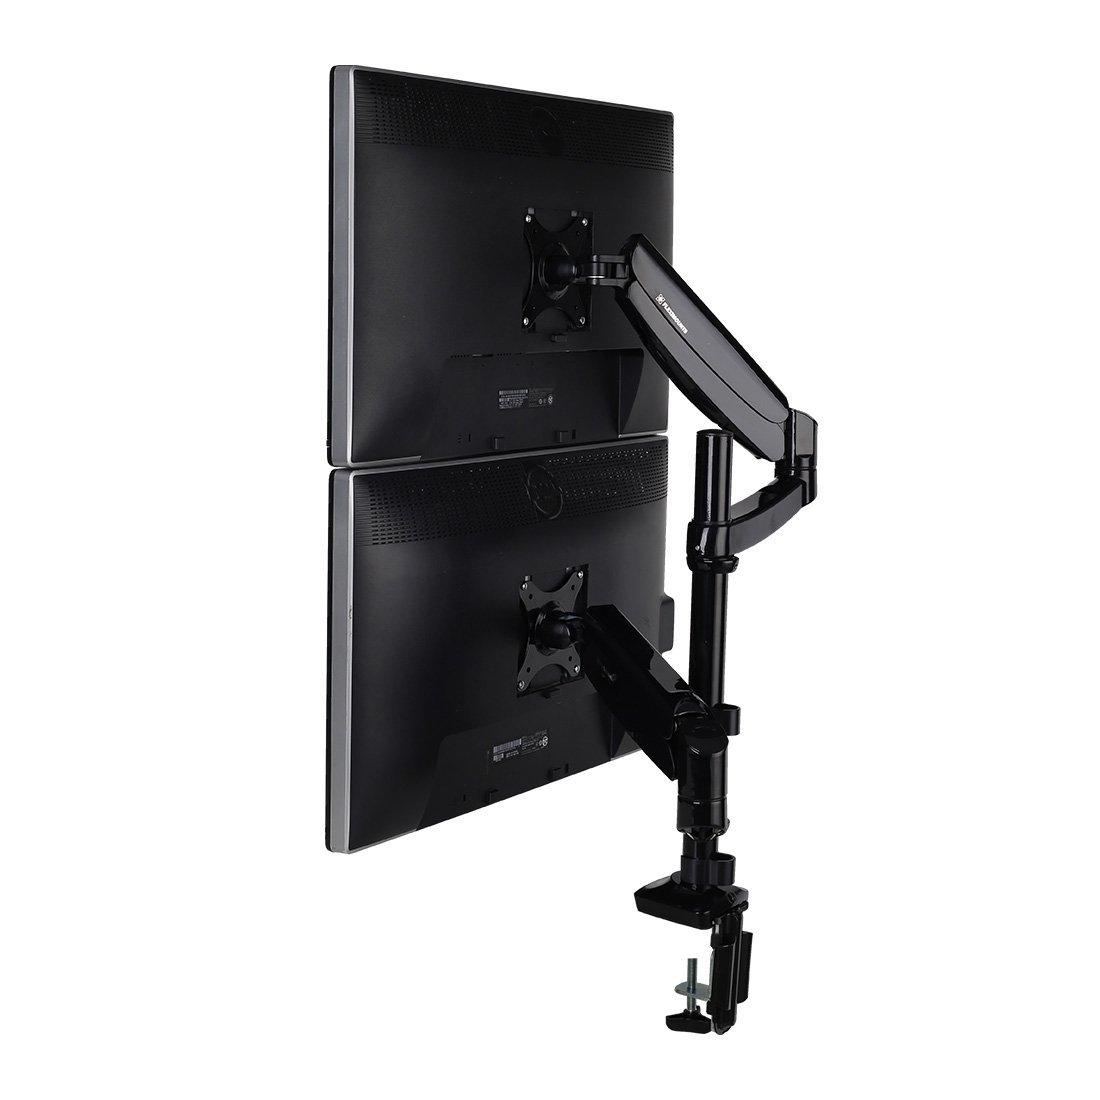 FLEXIMOUNTS Vertical Dual Monitor Mount LCD arm,Full Motion Stacking Desk mounts for 10''-27'' Computer Monitor, w Clamp or Grommet Desktop Support